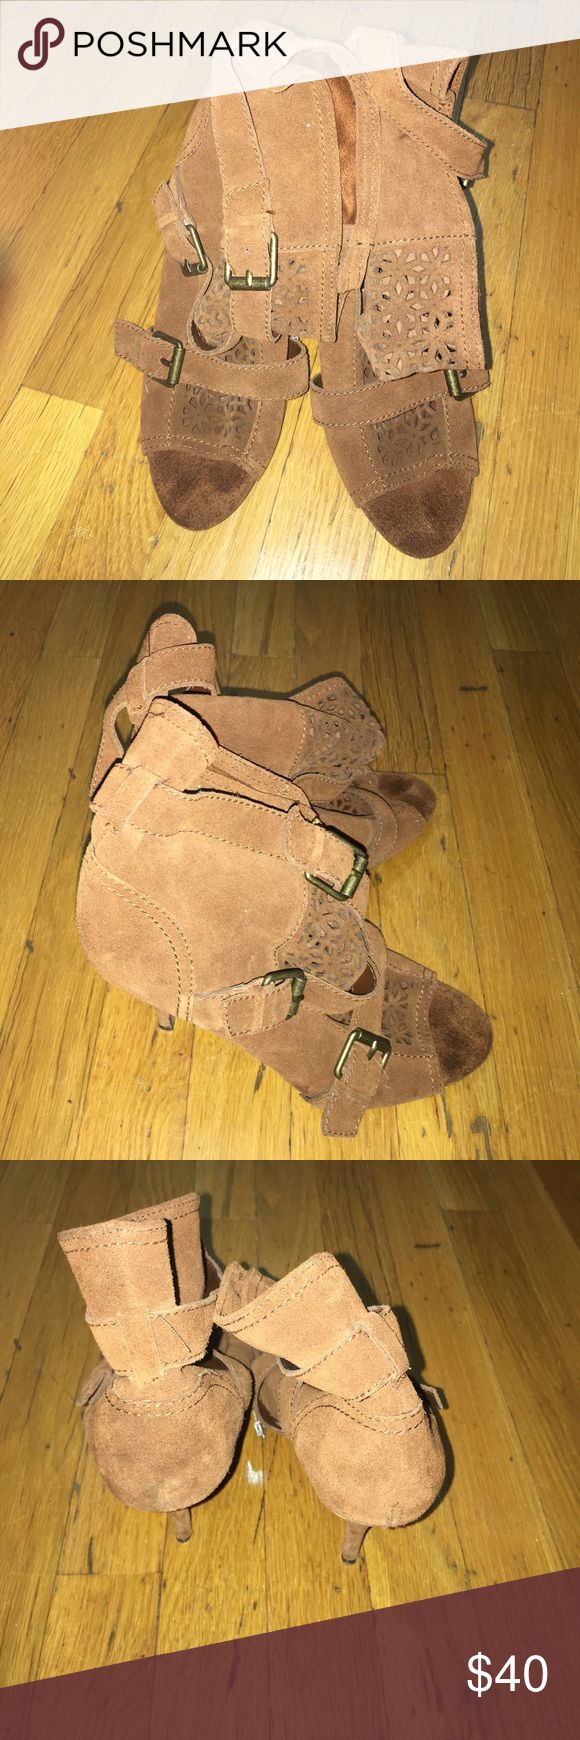 Steven suede peep toes booties Sz8.5 Good condition. Suede with buckles. Steven Shoes Ankle Boots & Booties